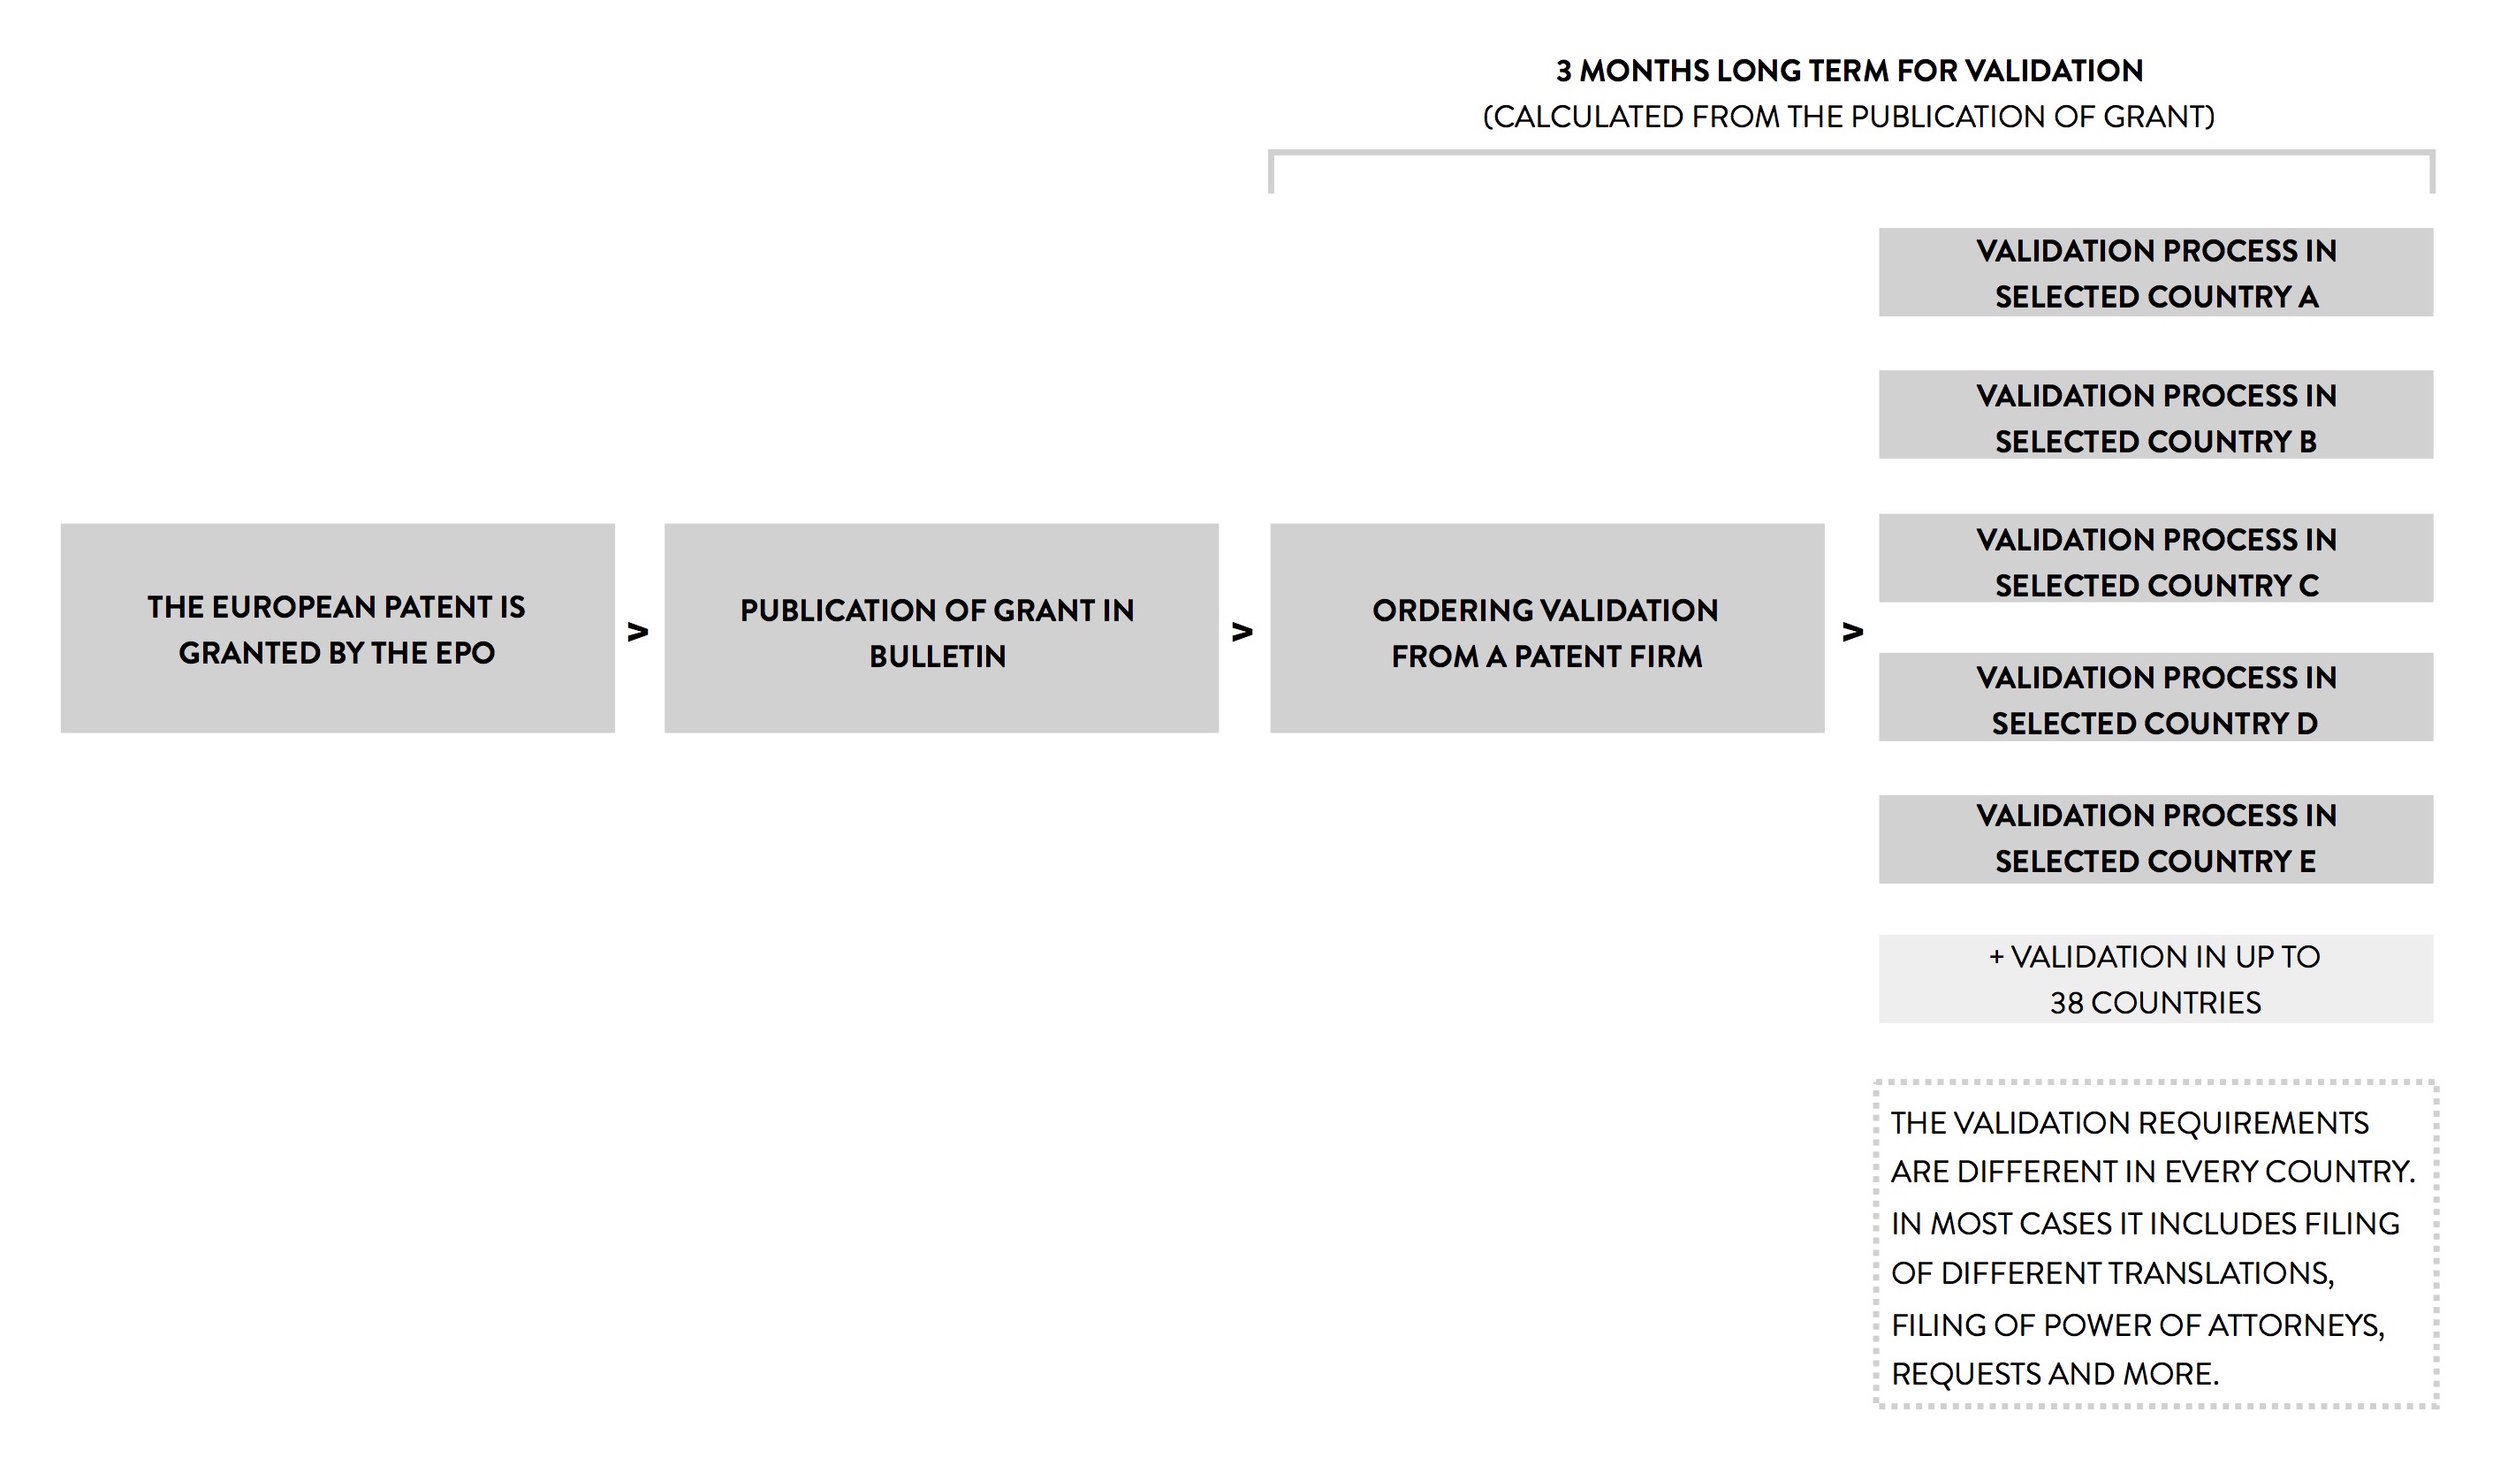 You can download the flowchart by clicking on the image